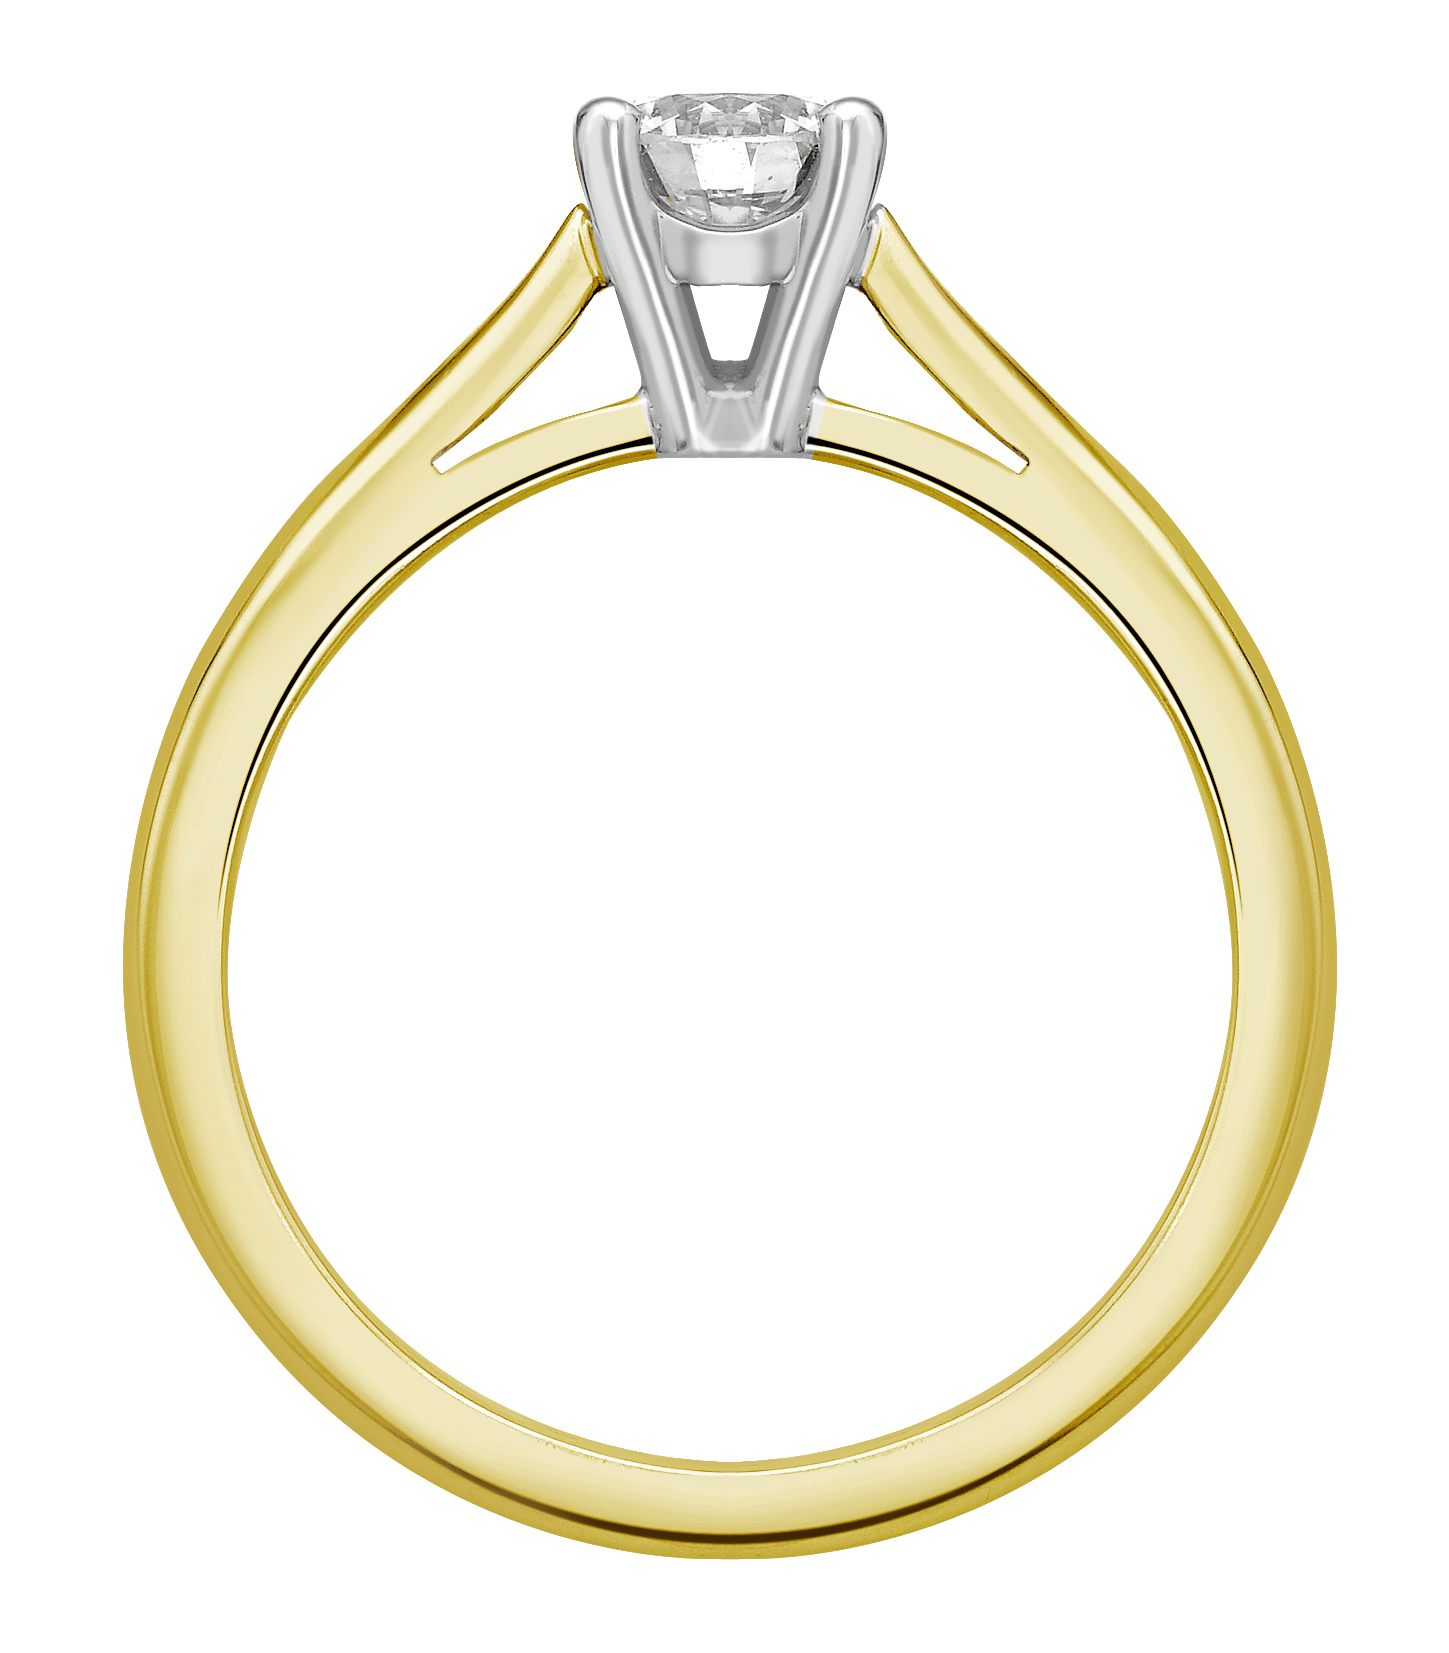 Round 4 Claw Yellow Gold Engagement Ring GRC650YG Image 2